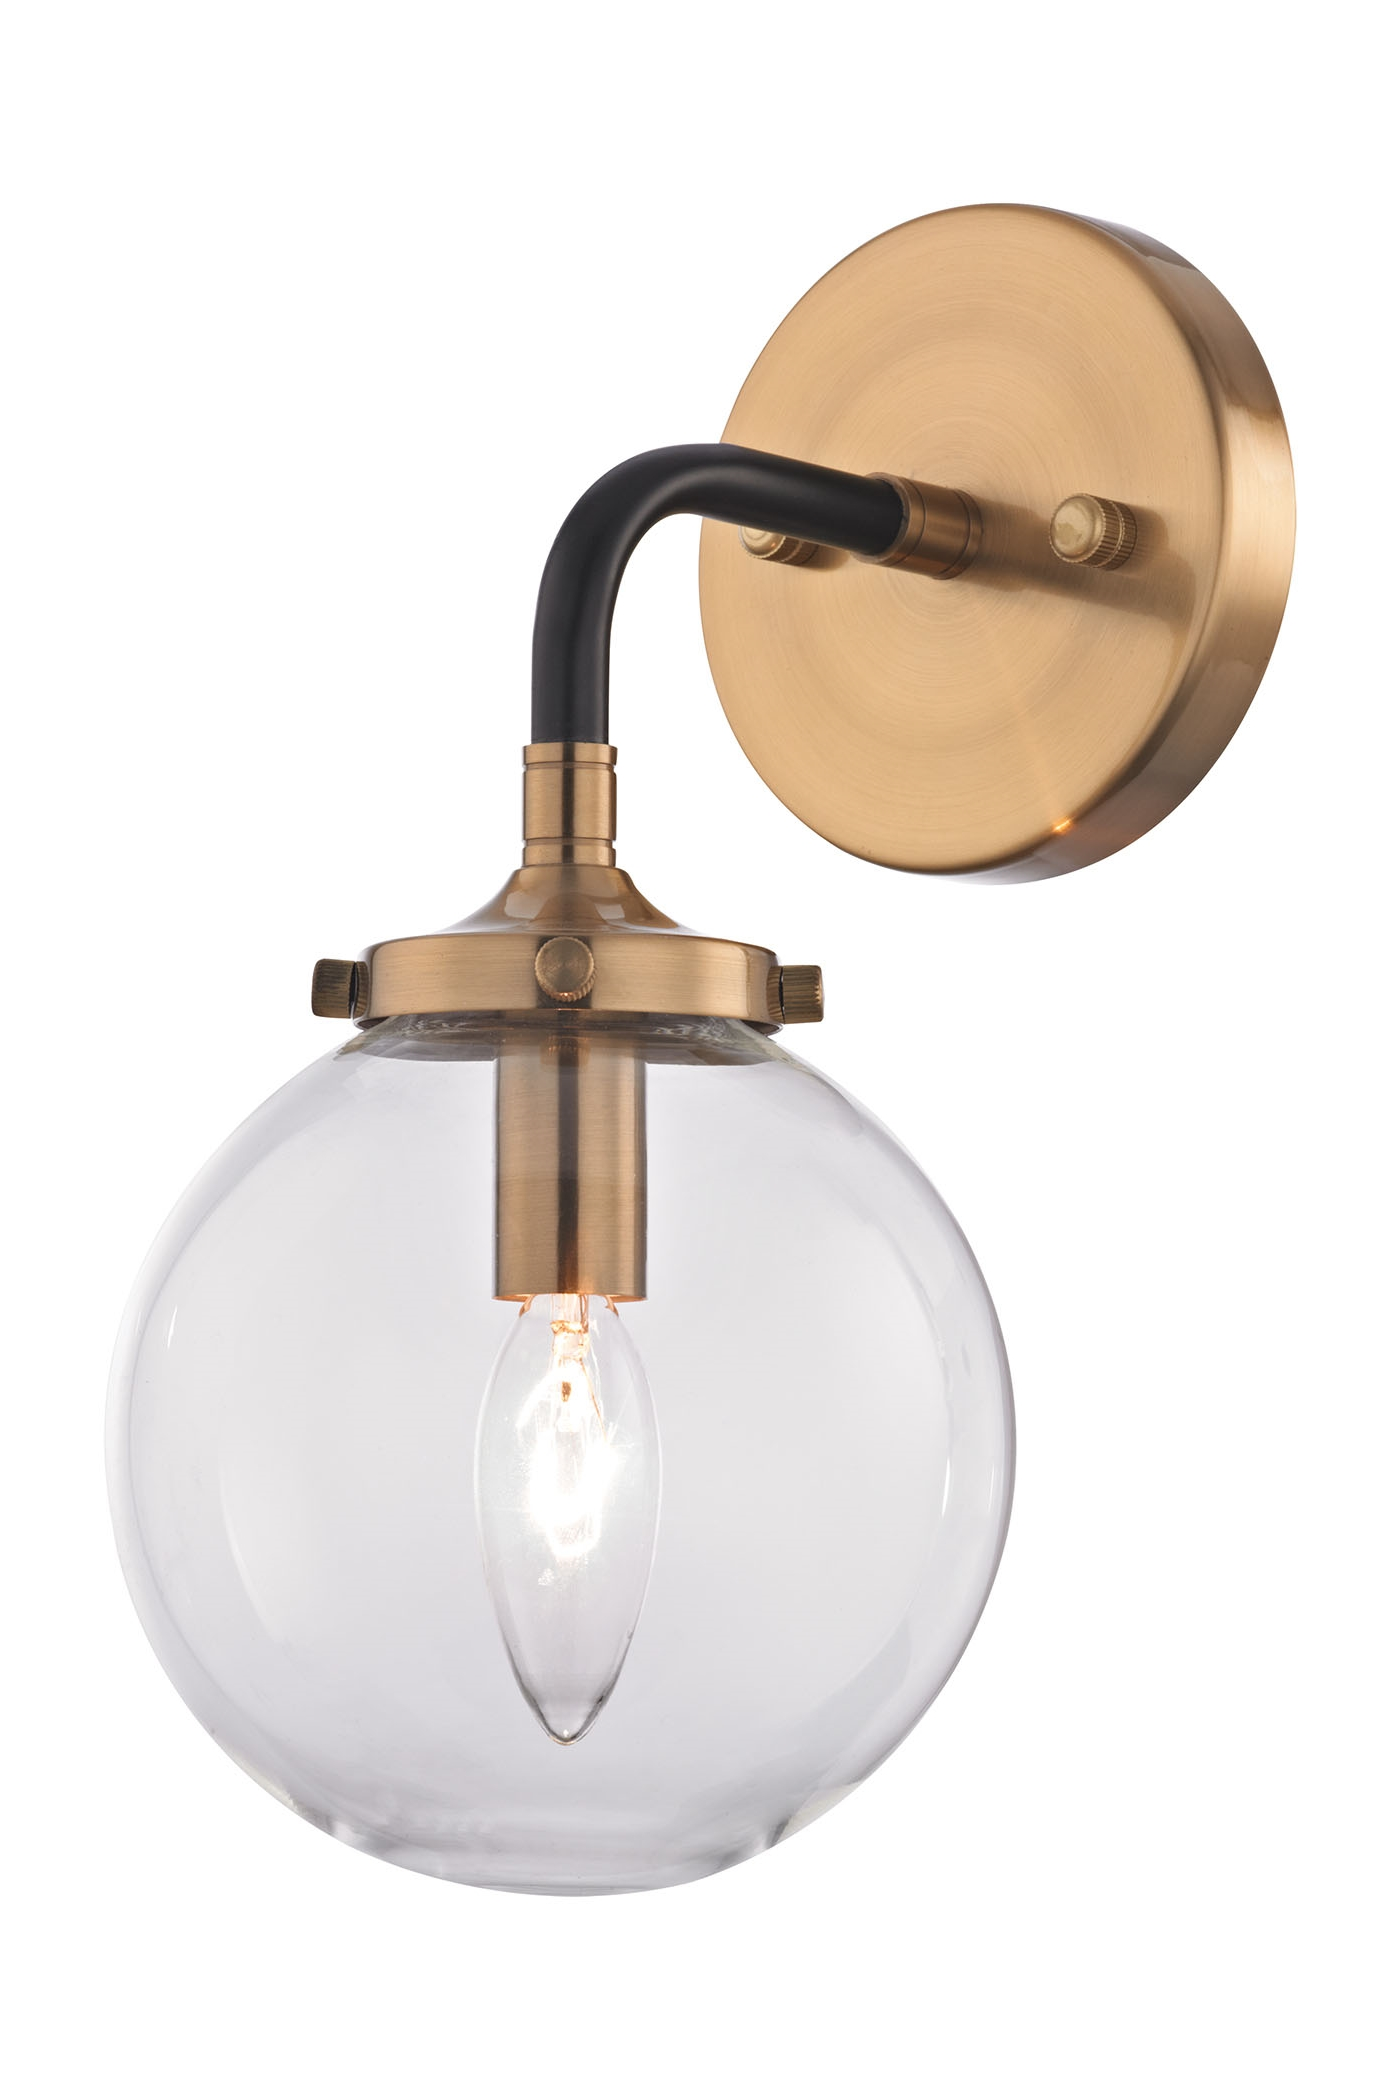 Glass sphere wall sconce with brass fixing.